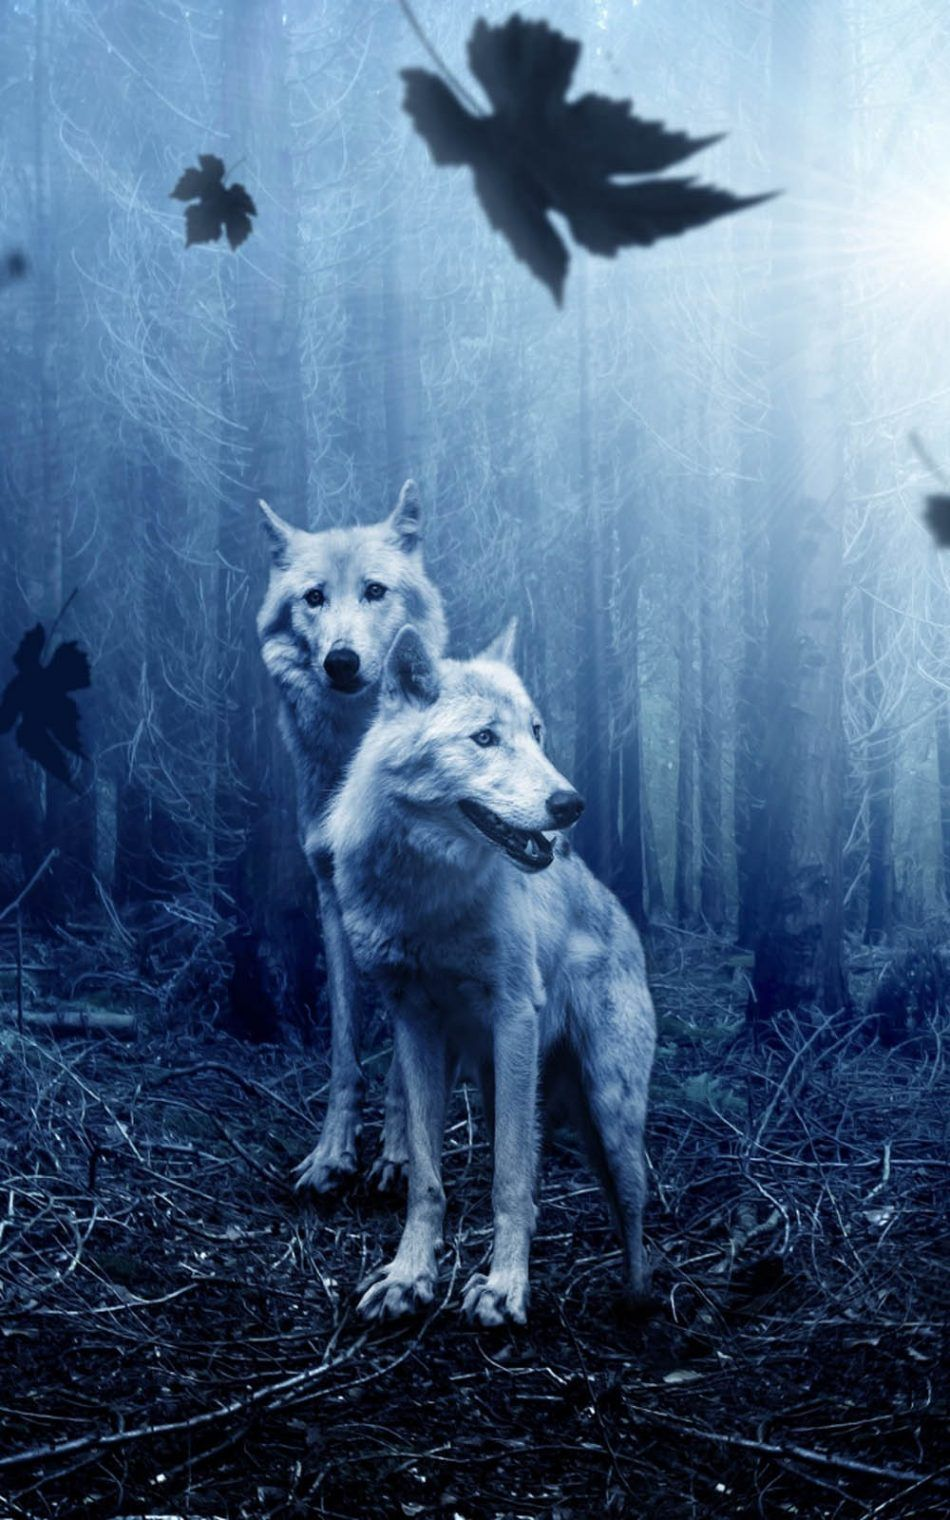 Wolves Night Forest 4k Ultra Hd Mobile Wallpaper Animal Wallpaper Wolf Wallpaper Animals